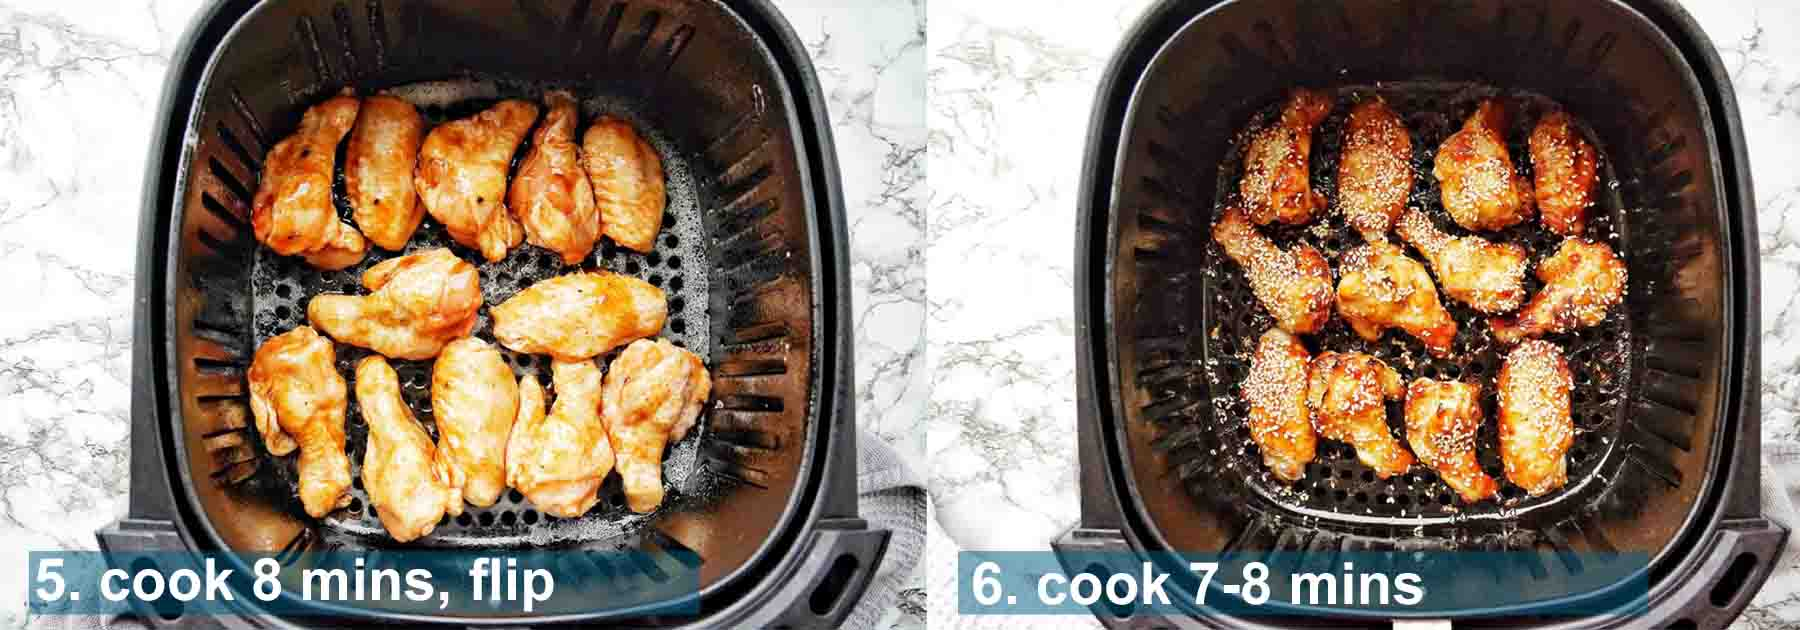 Before and after photos of Air Fryer Chicken Wings